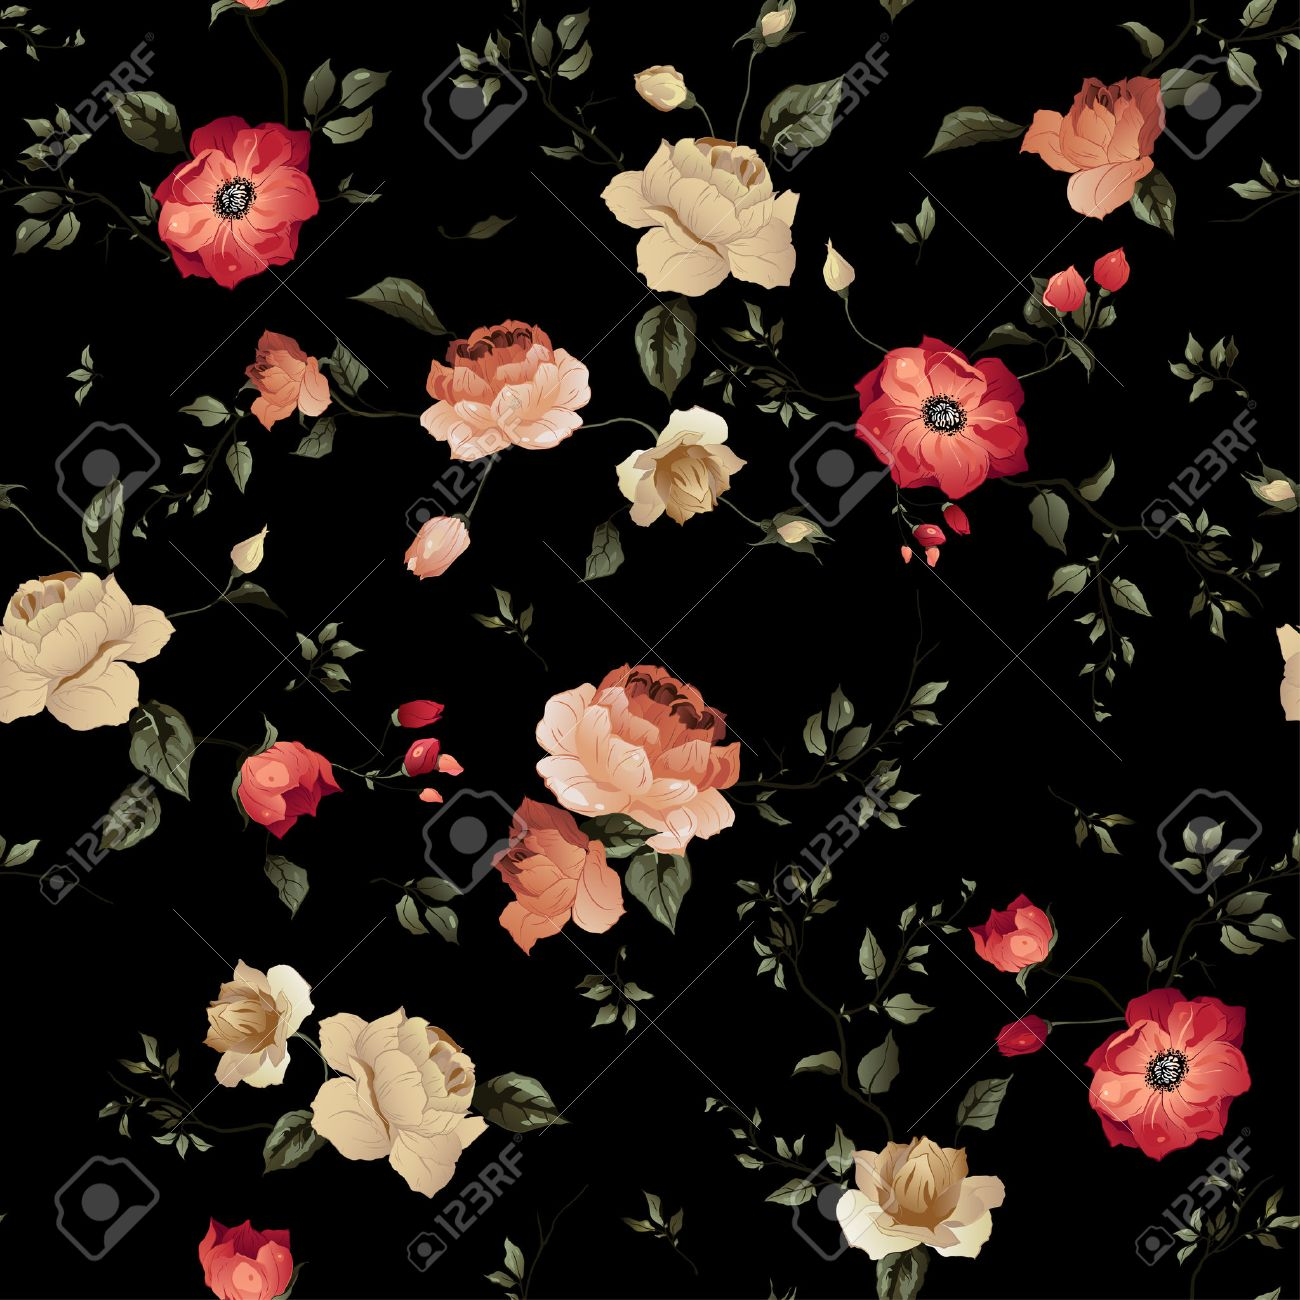 Seamless Floral Pattern With Of Roses On Dark Background